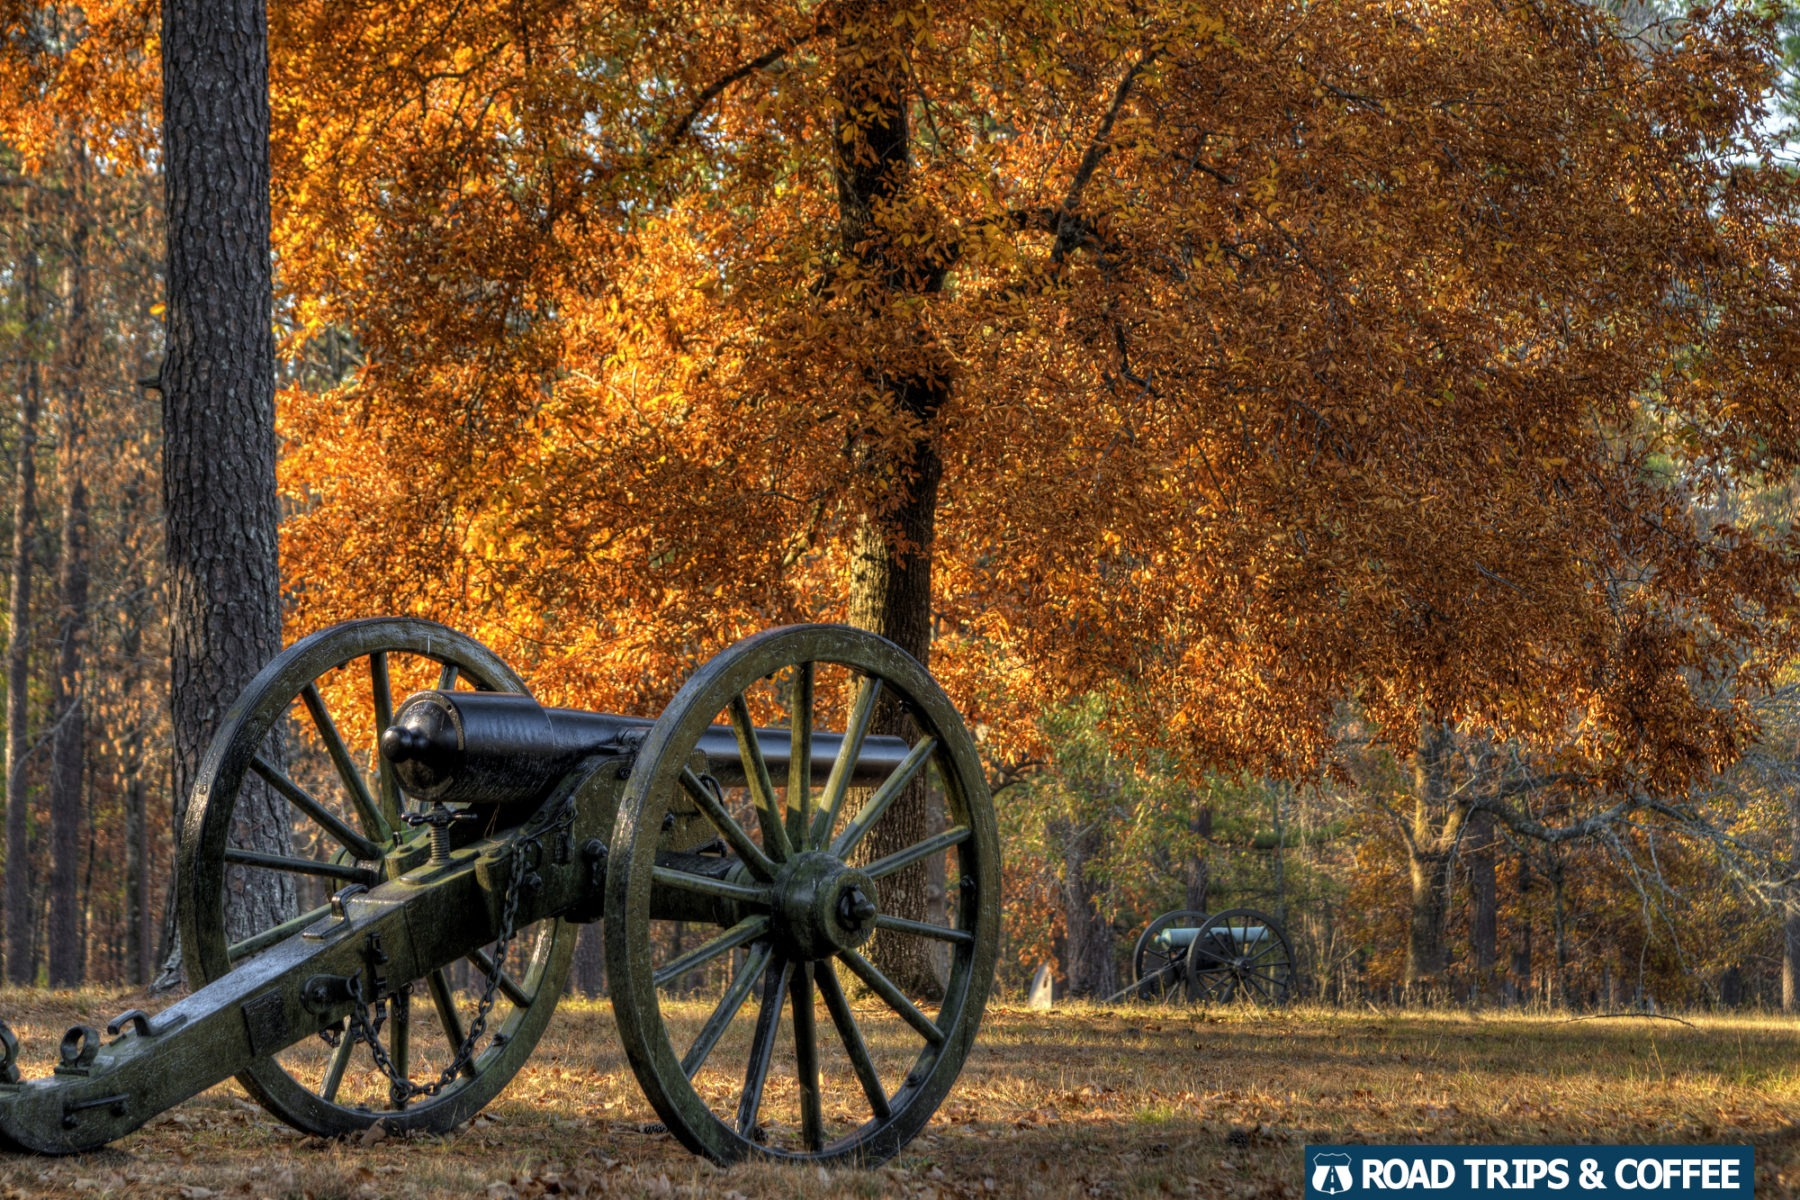 Bright orange fall colors in a tree behind a canon on display at Chickamauga & Chattanooga National Military Park in Fort Oglethorpe, Georgia